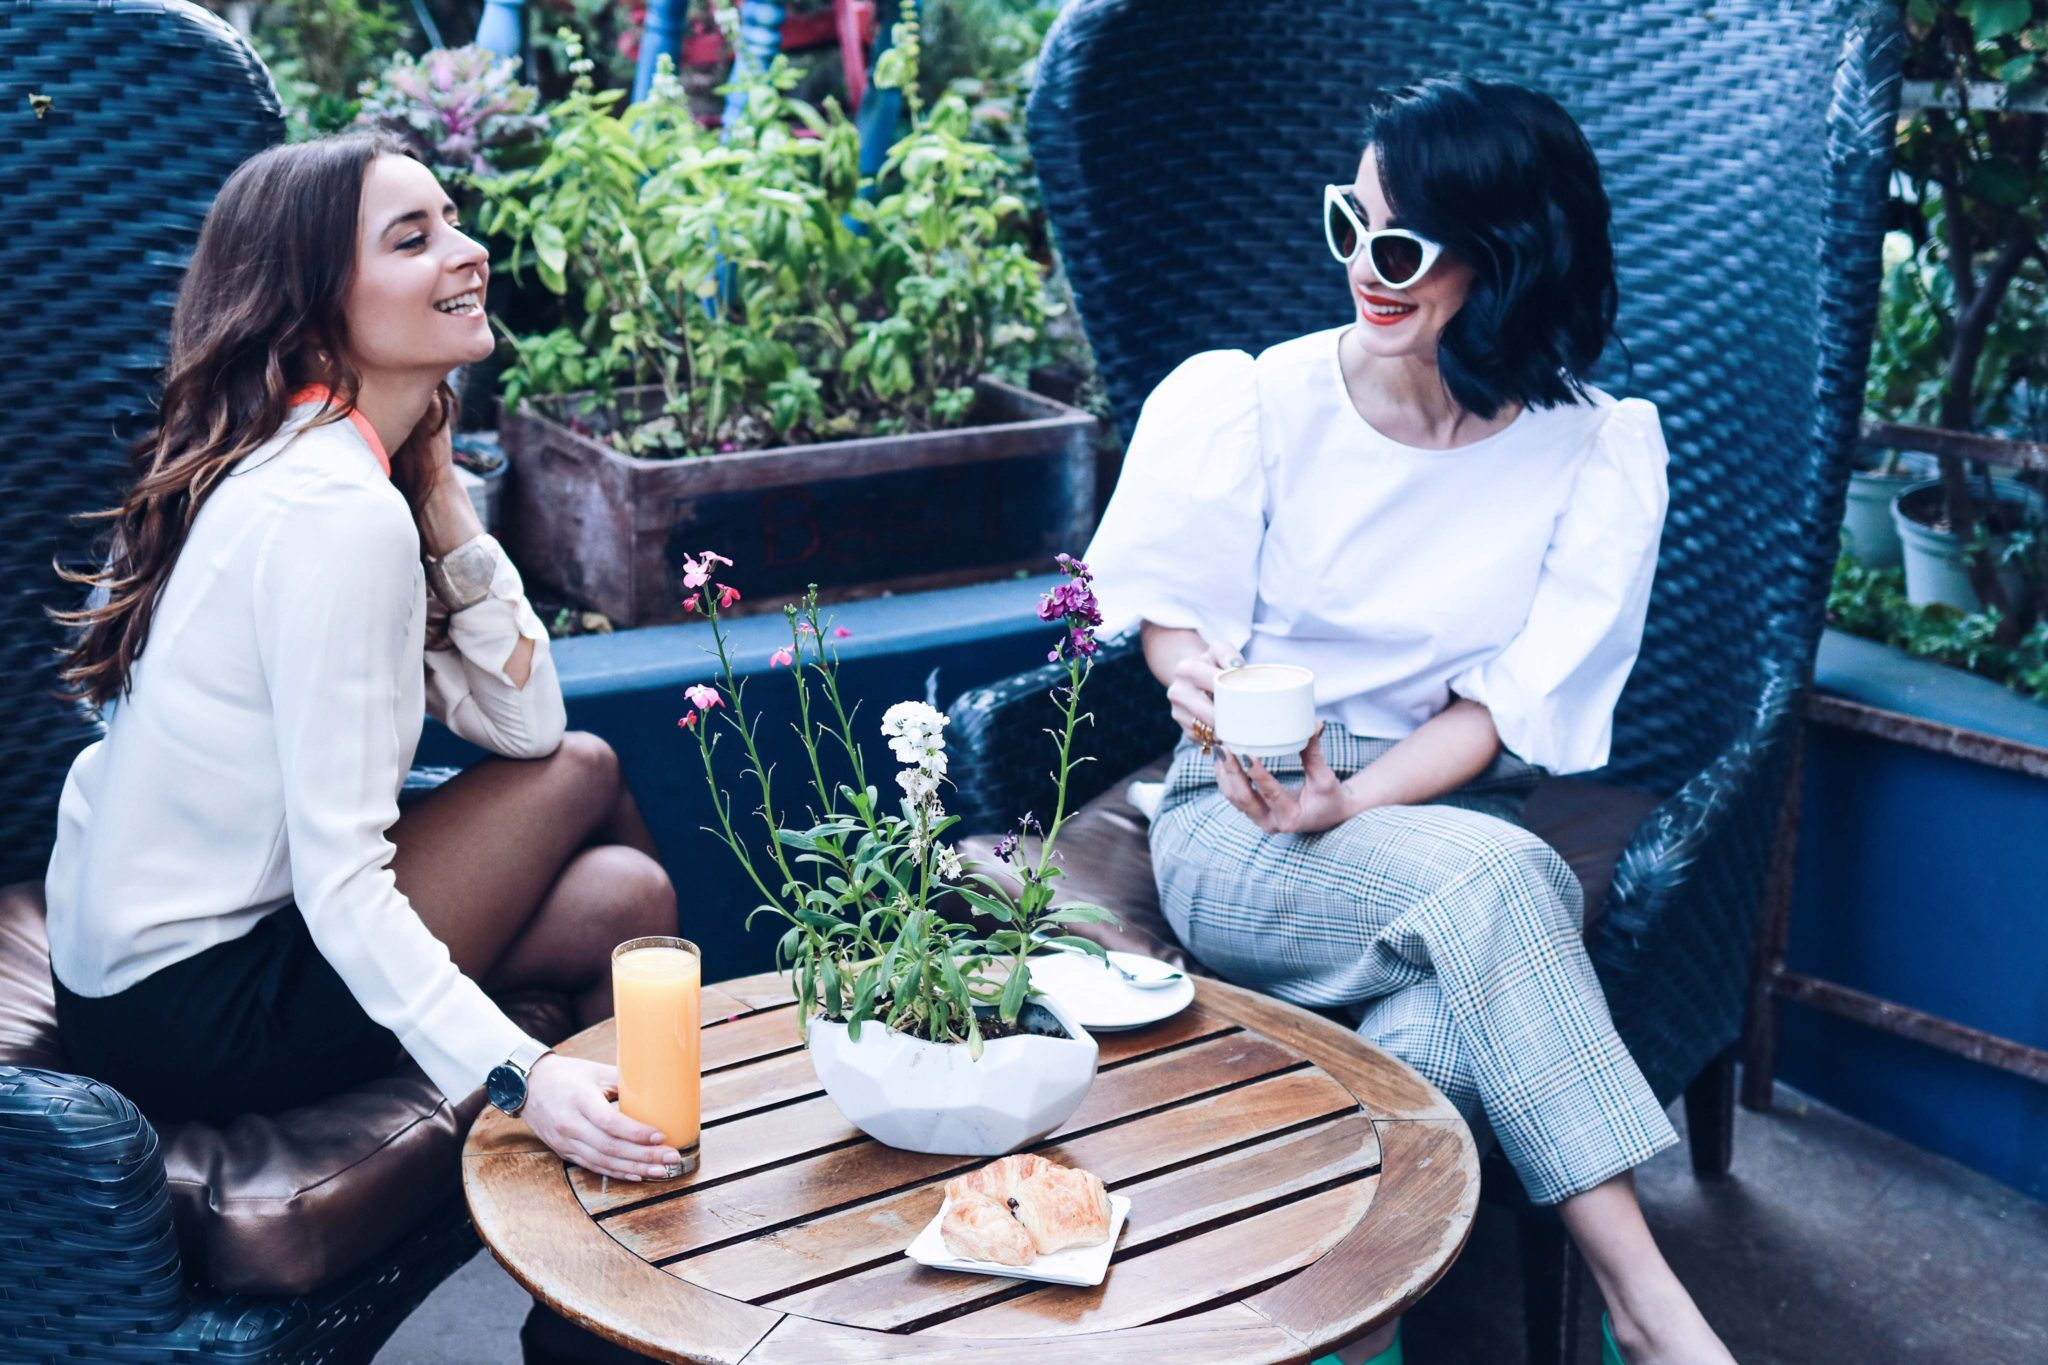 Best Brunch Place in LA: Sofitel Los Angeles at Beverly Hills: A French Brunch in an intimate patio - Galentine's day idea in Los Angeles